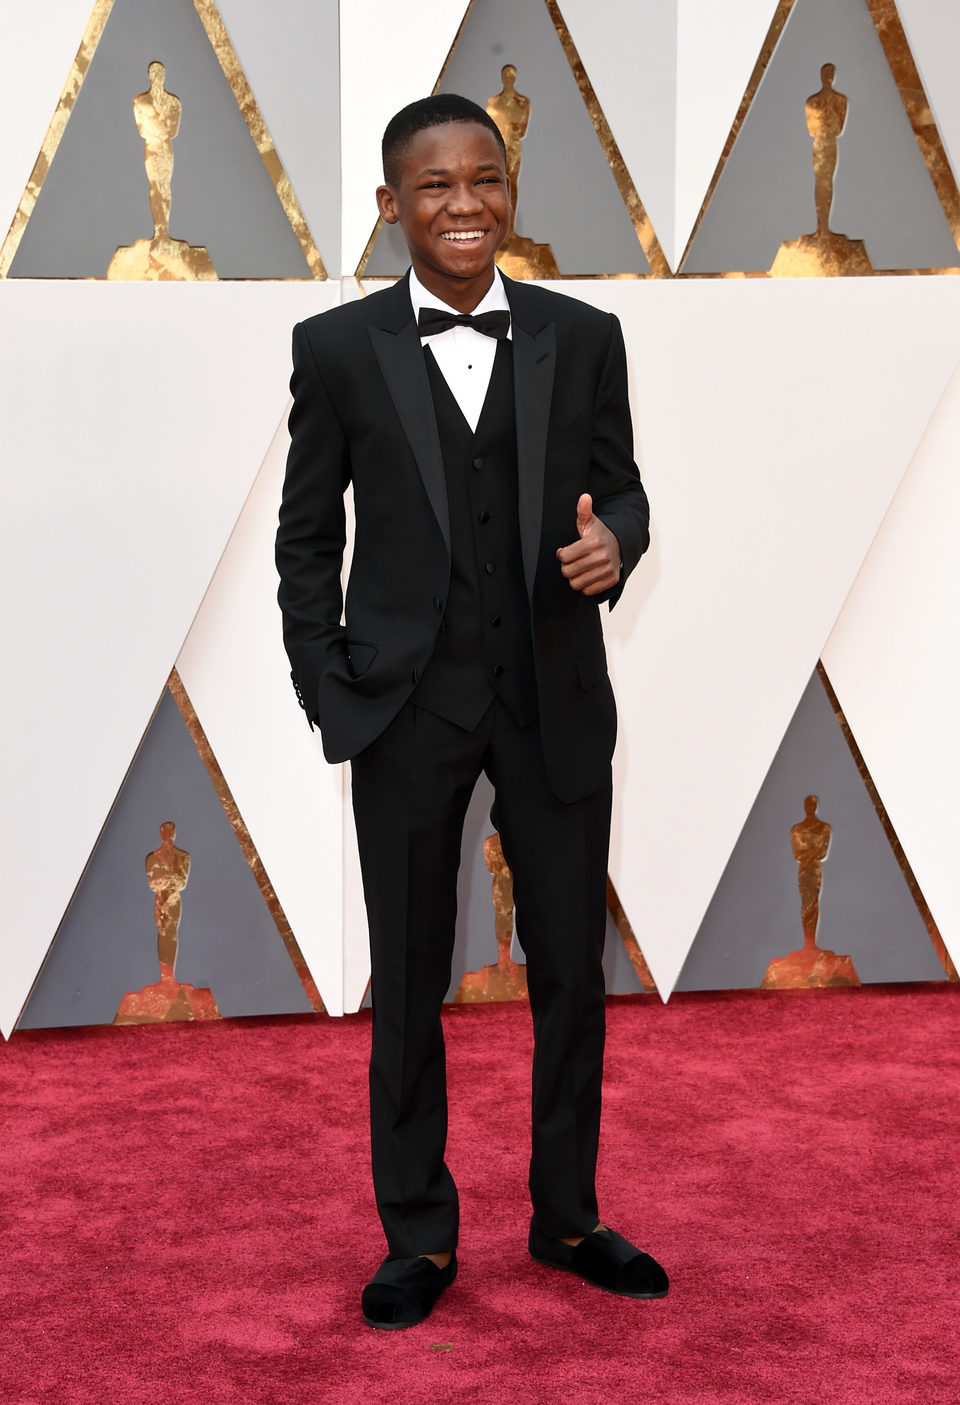 Abraham Attah at the Oscars 2016 red carpet